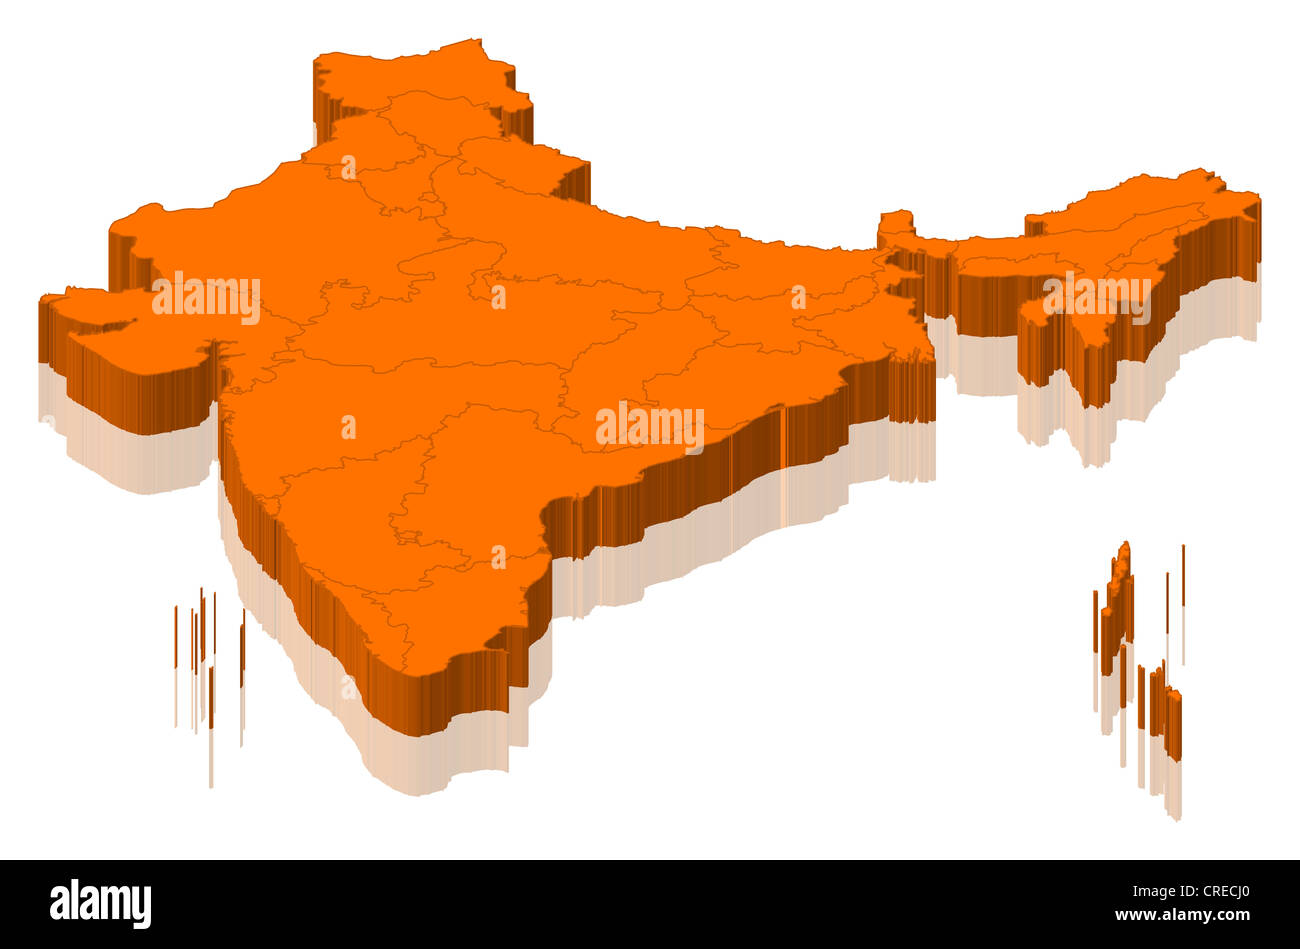 Political map of India with the several states. - Stock Image